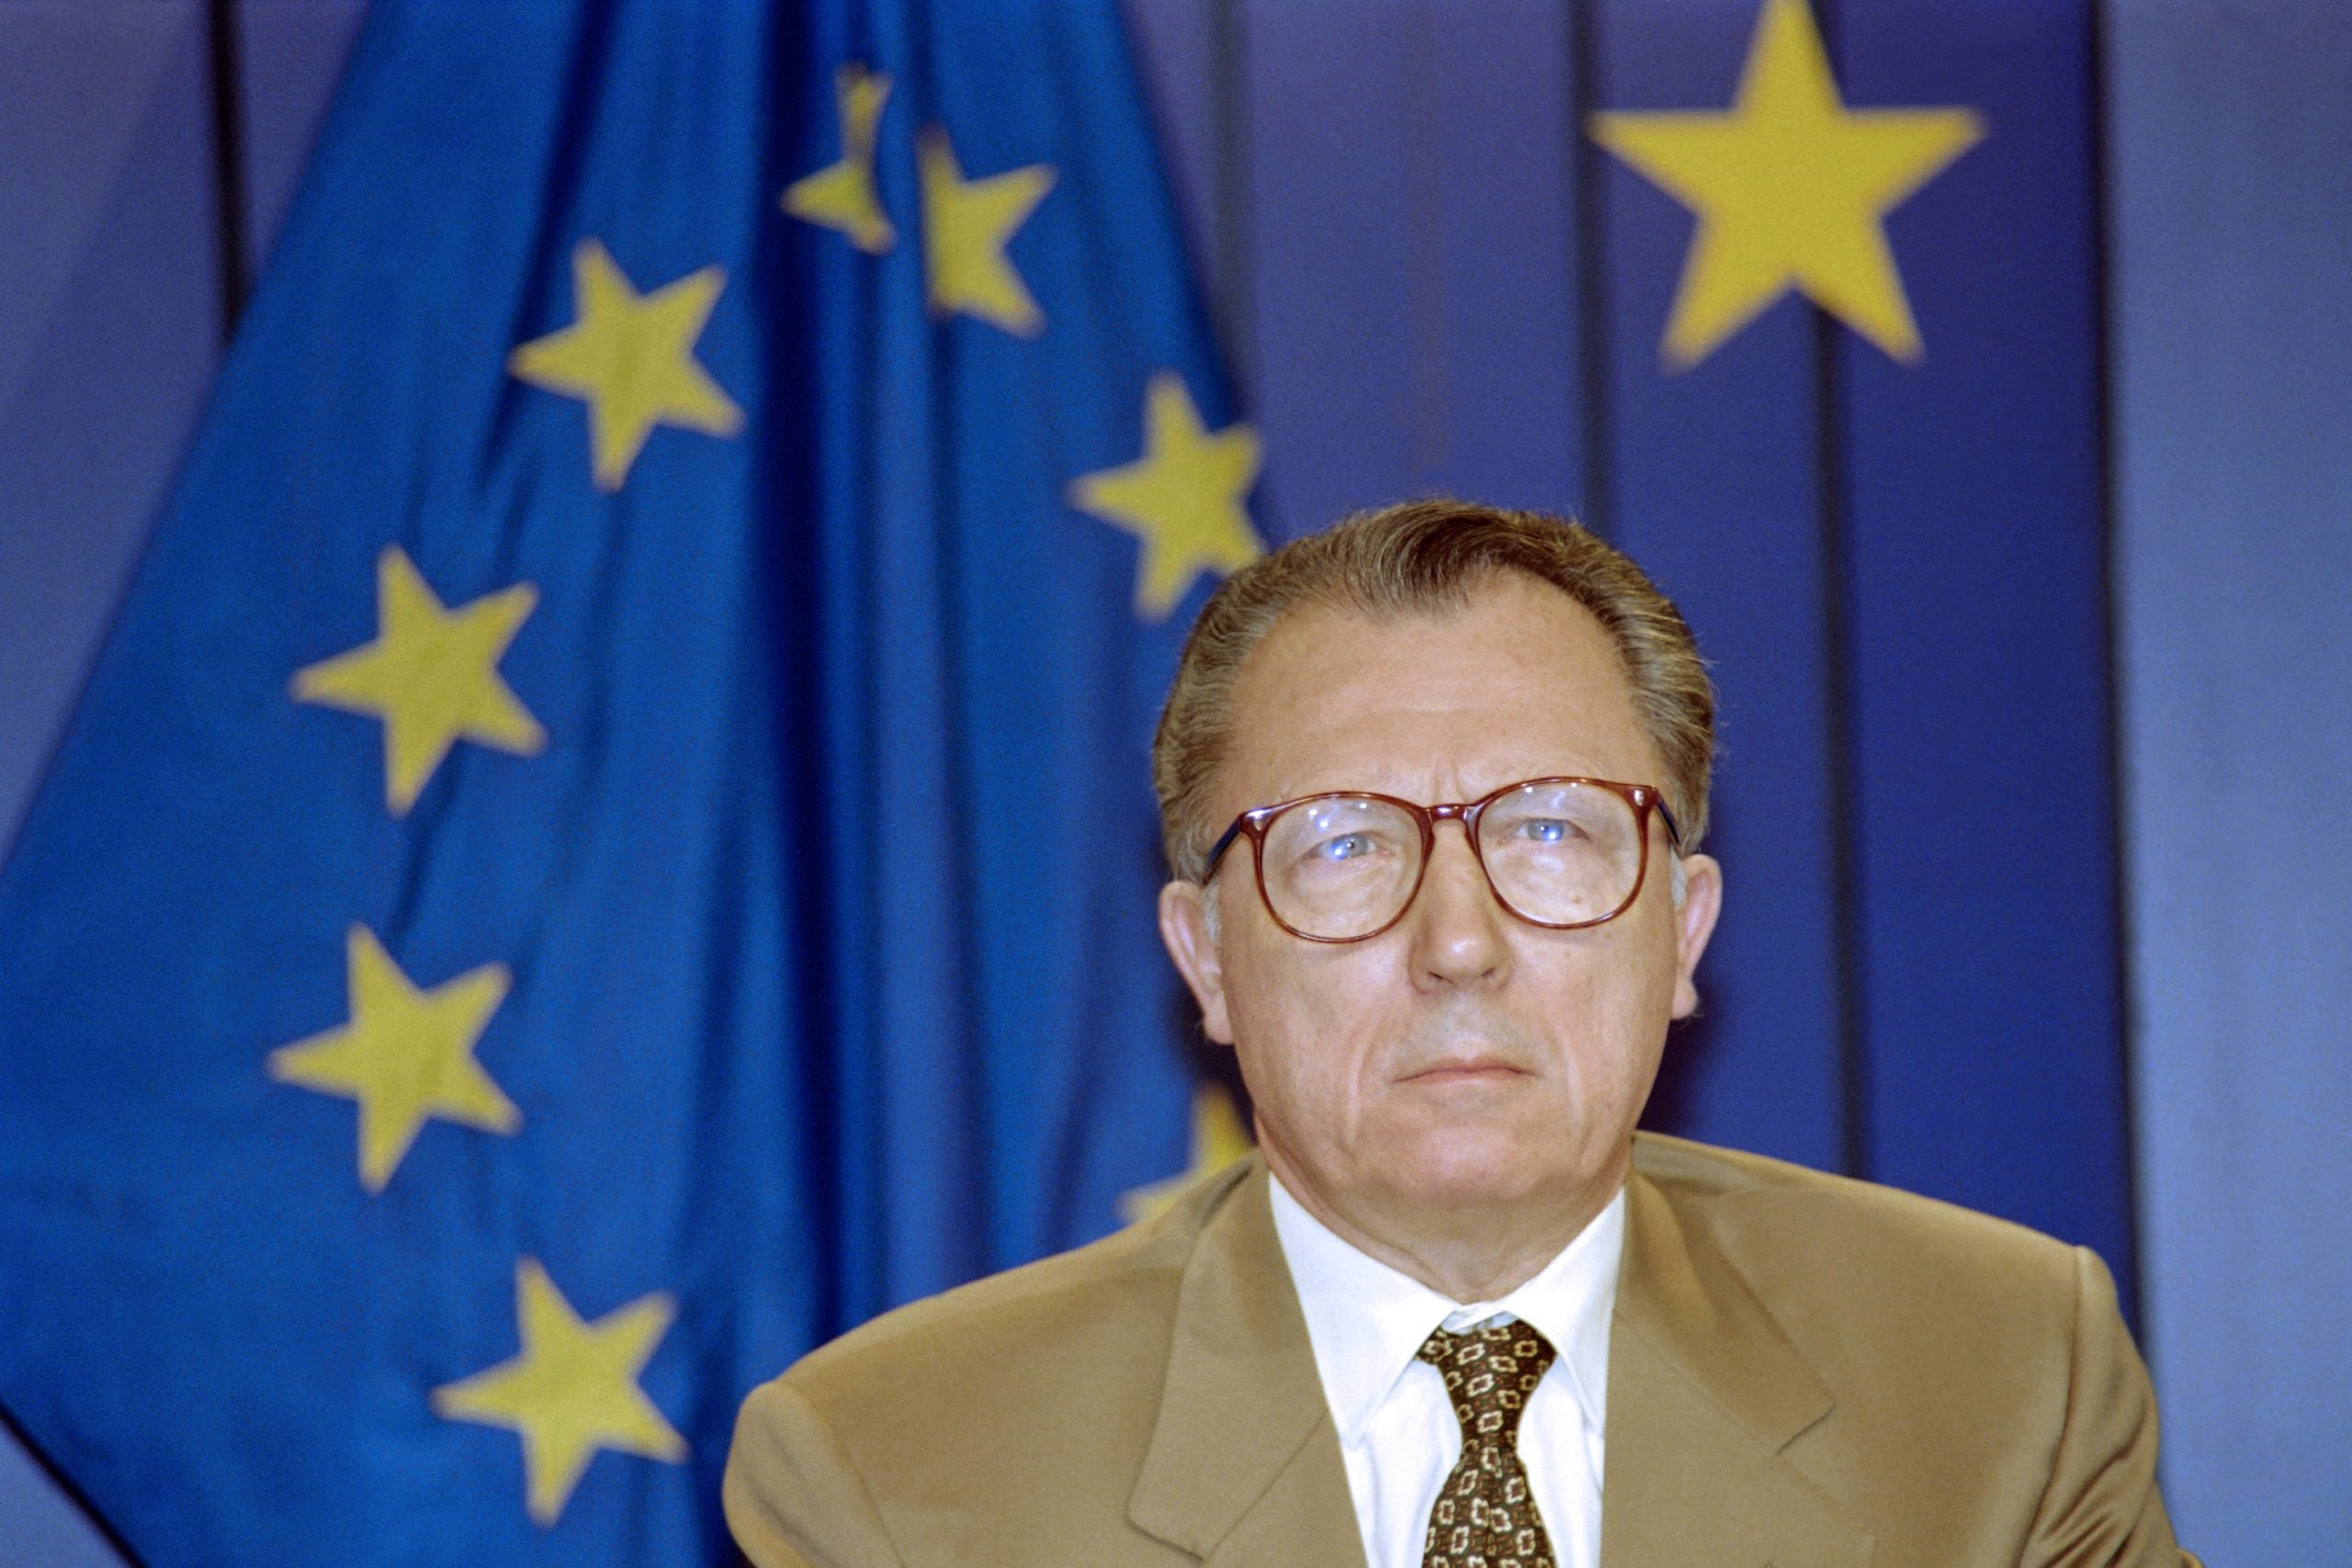 How one man changed how British politicians felt about Europe – forever